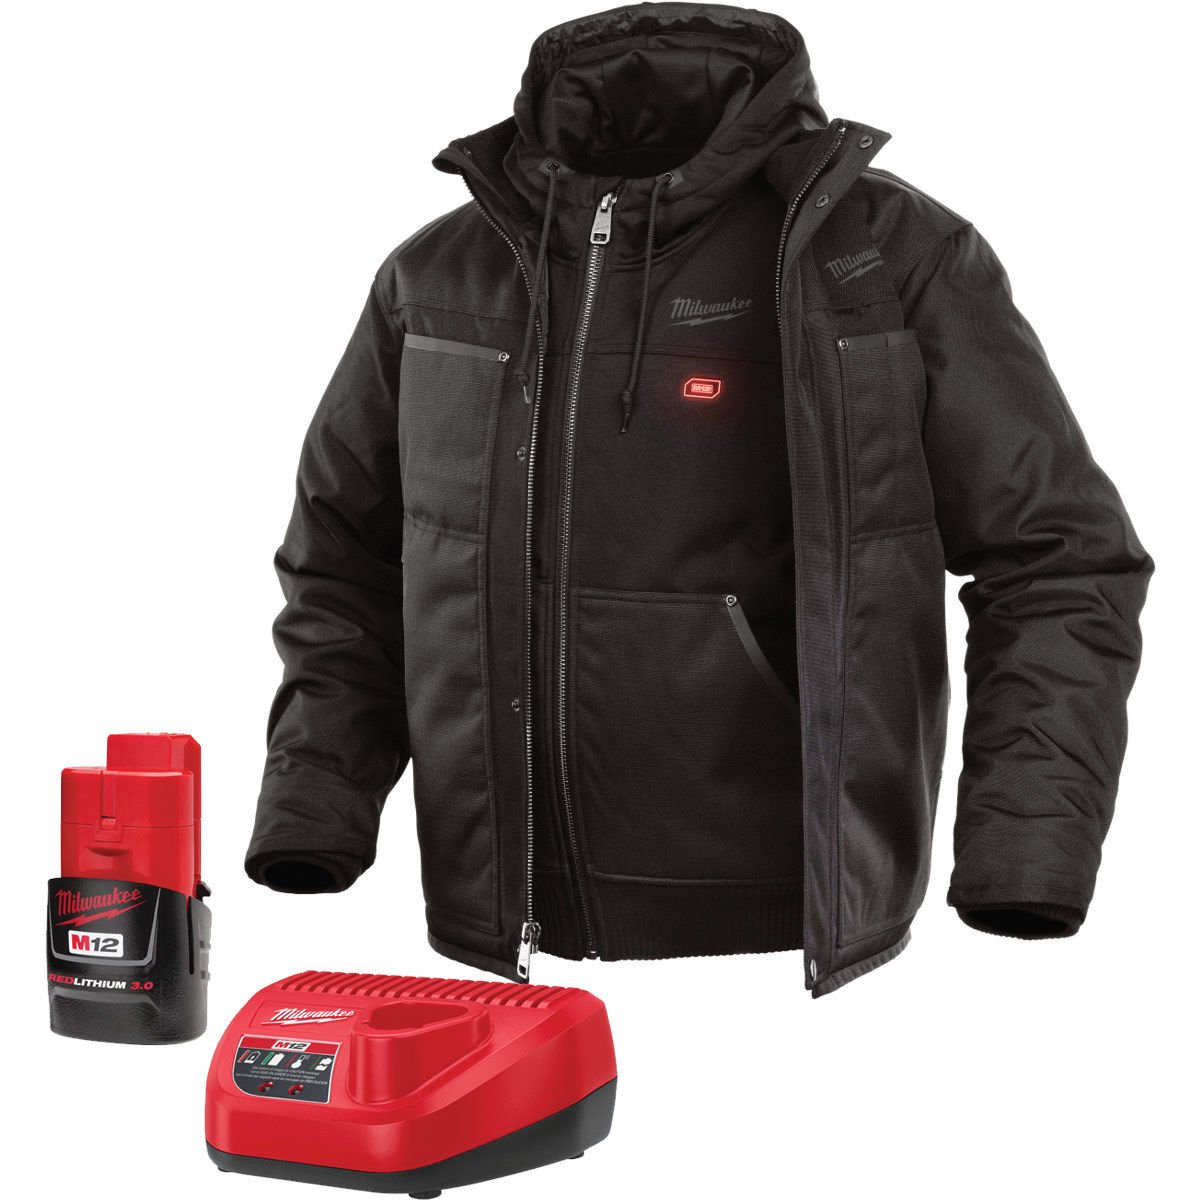 Milwaukee Jacket KIT M12 12V Lithium-Ion Heated Front and Back Heat Zones -All Sizes and Colors - Battery and Charger Included - (Large, Black 3-in-1)